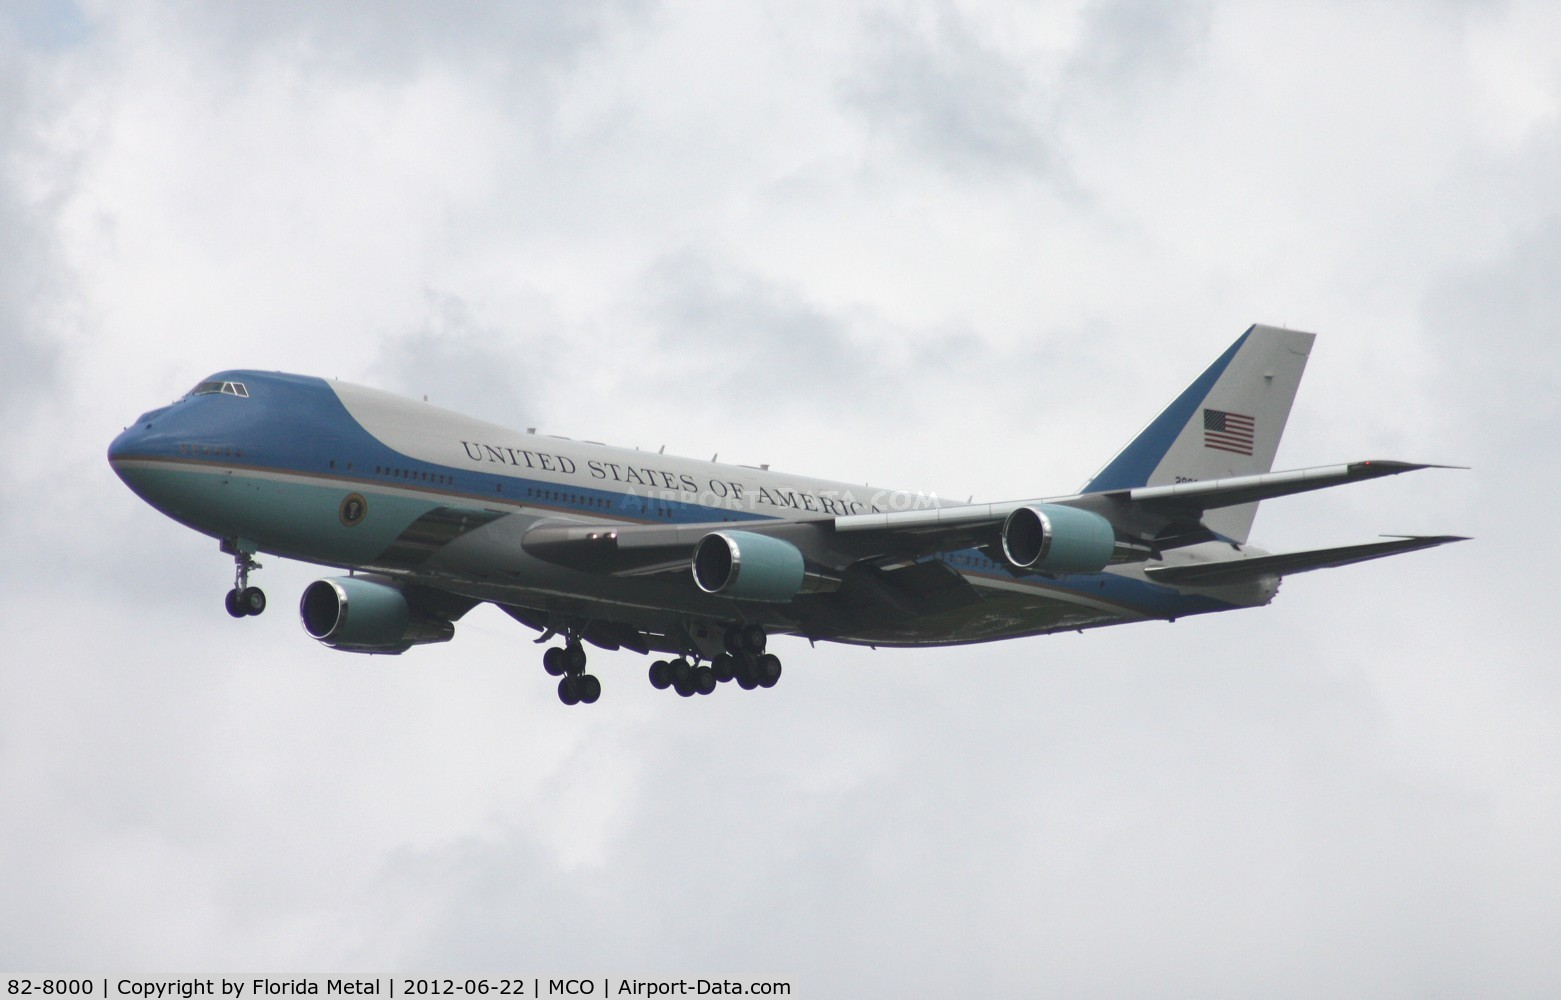 82-8000, 1988 Boeing VC-25A C/N 23824, Air Force One